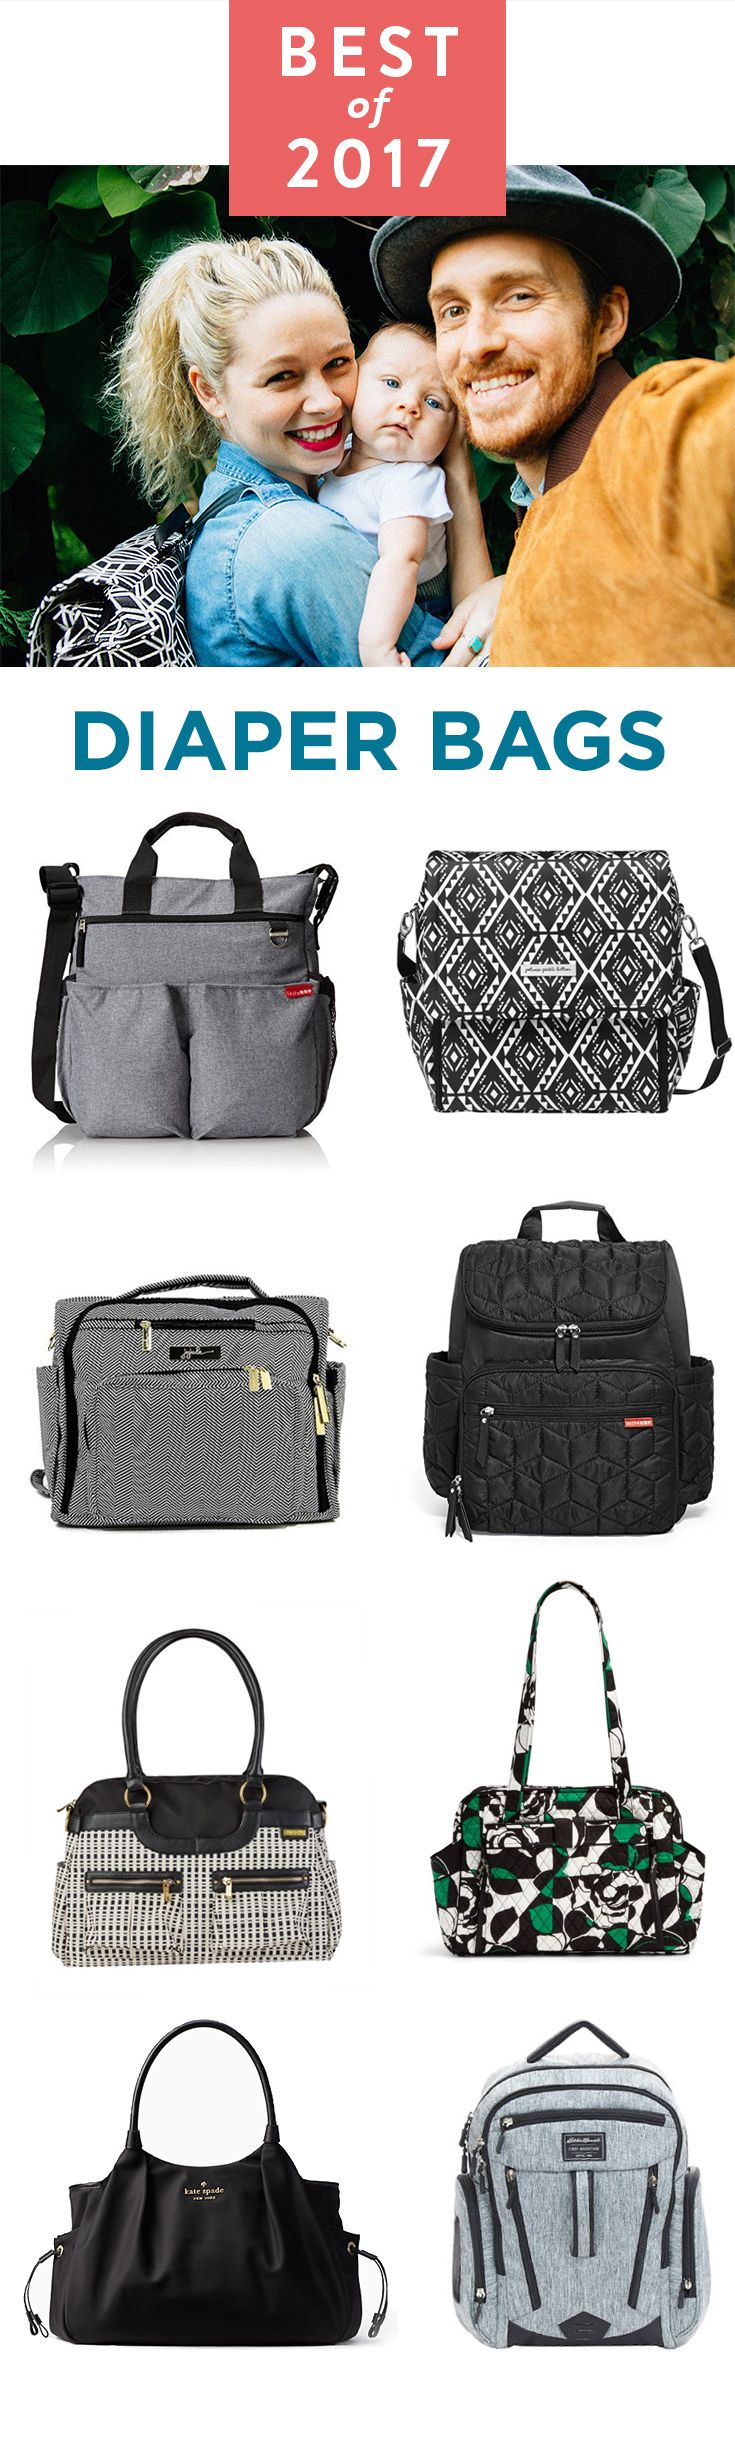 Take your family show on the road (or at least to the park) with the ease and style of the best diaper bags.